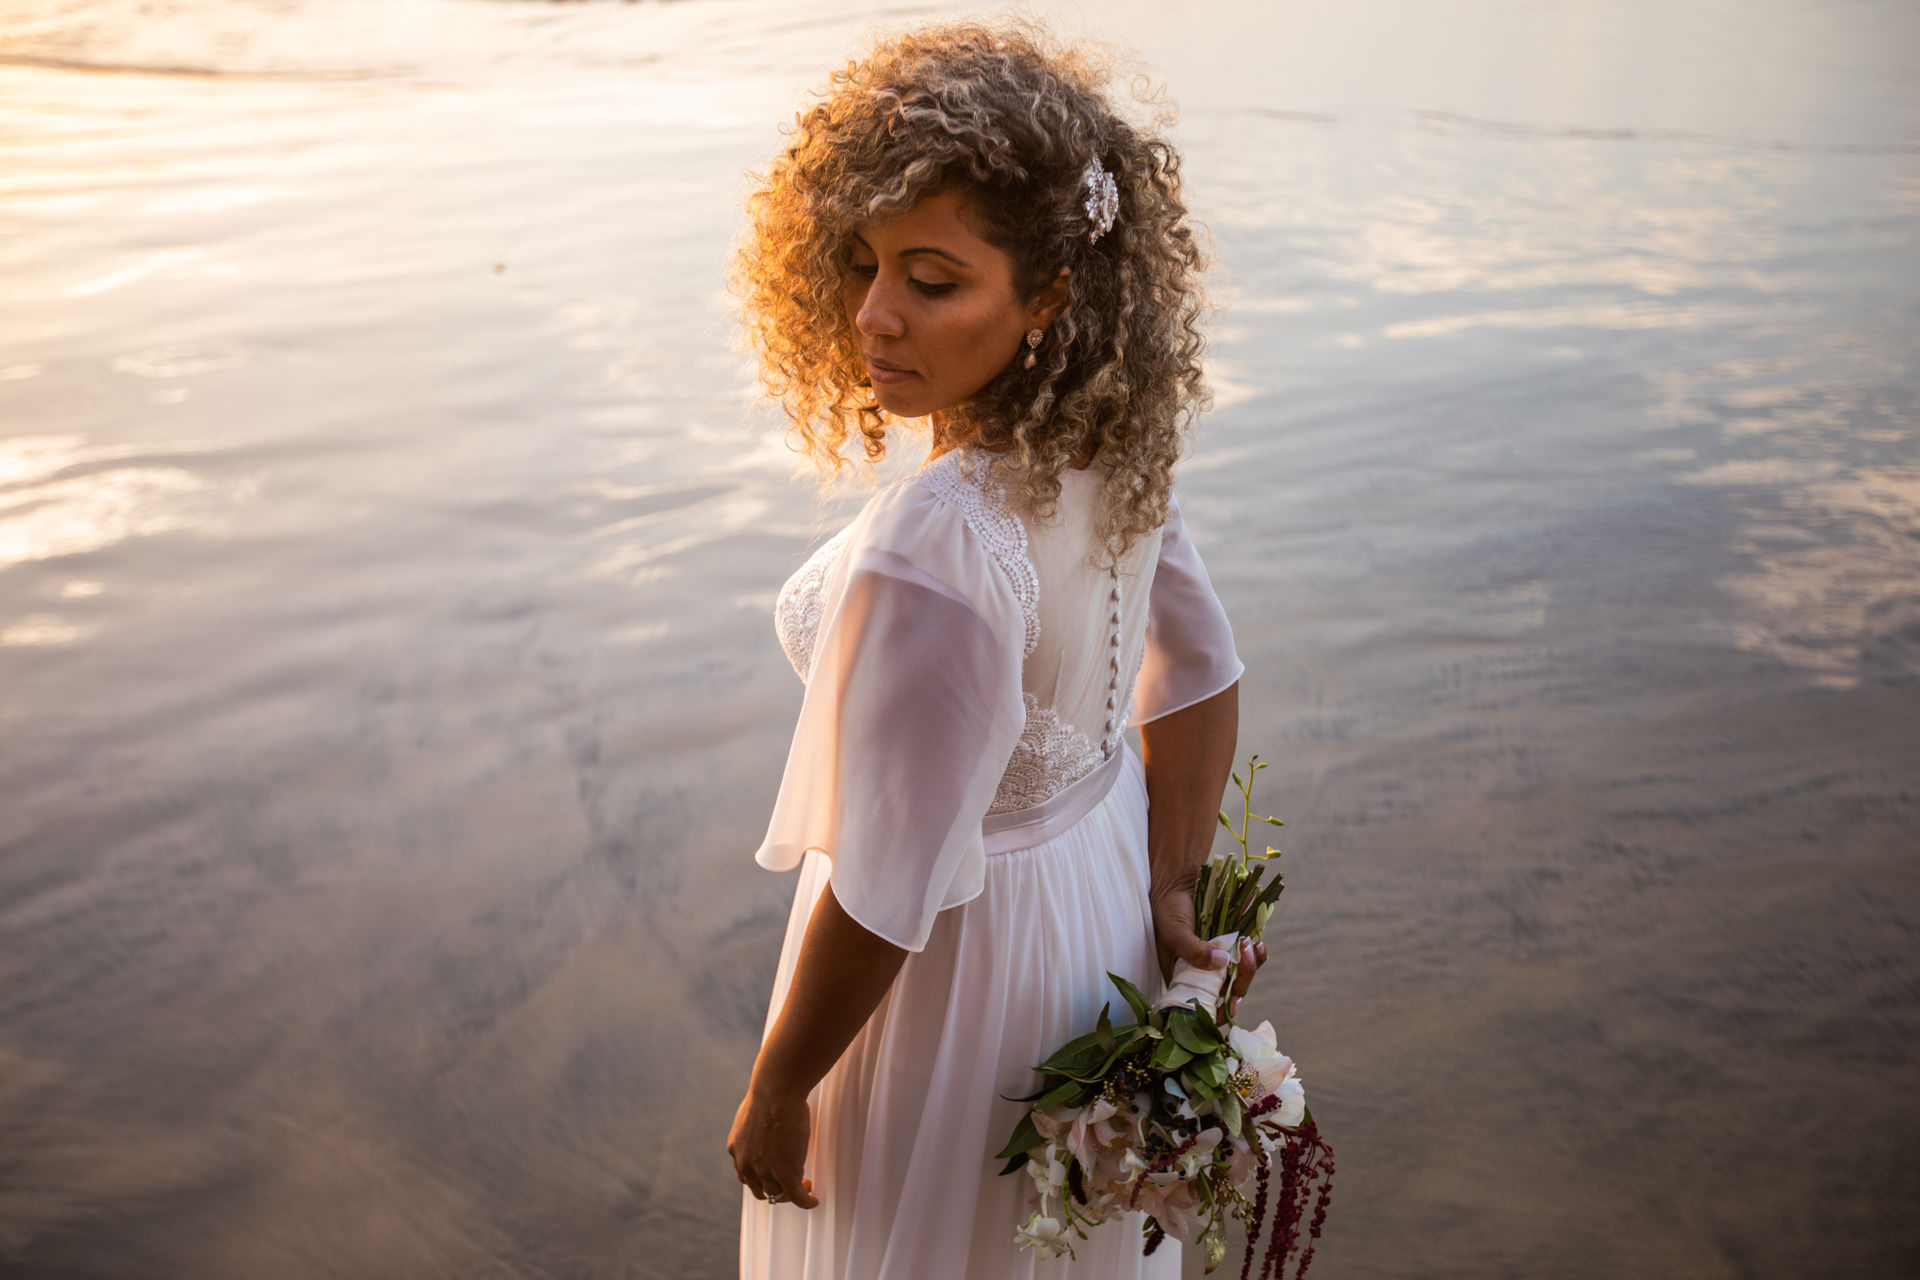 Gerusa Bridal Portrait La Jolla San Diego Beach Wedding Sunset by Faces Photography